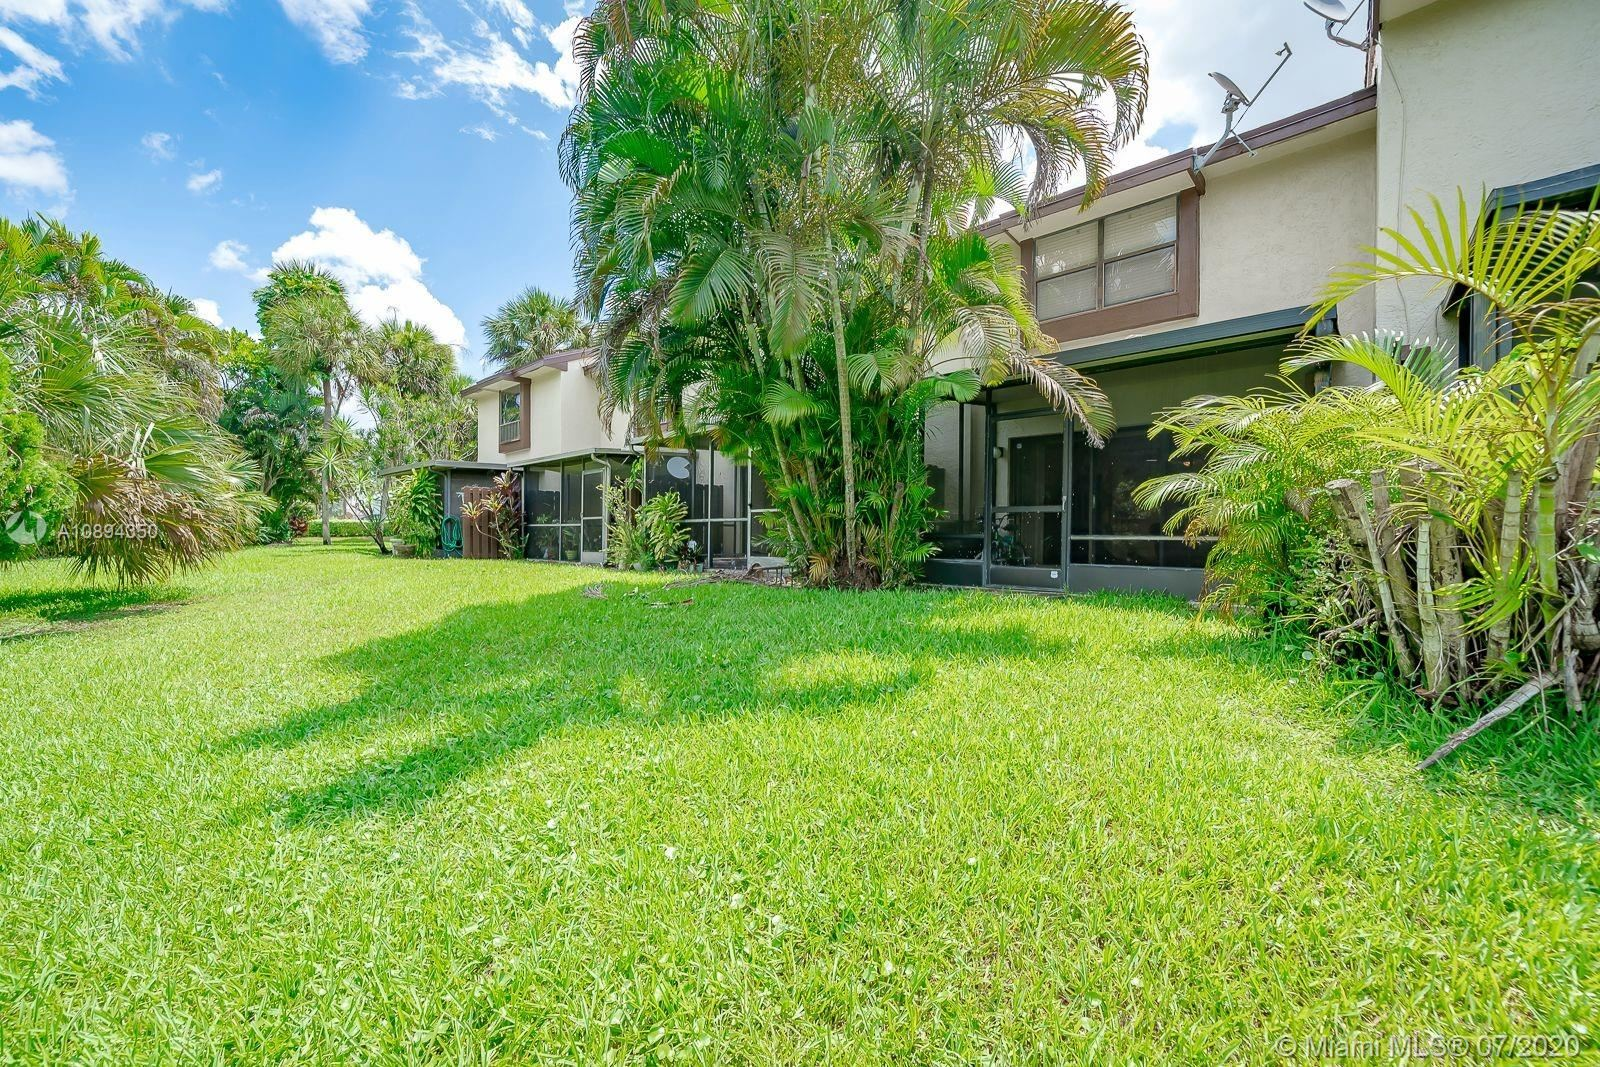 4908 NW 82nd Ave #2004, Lauderhill, FL 33351 - #: A10894350